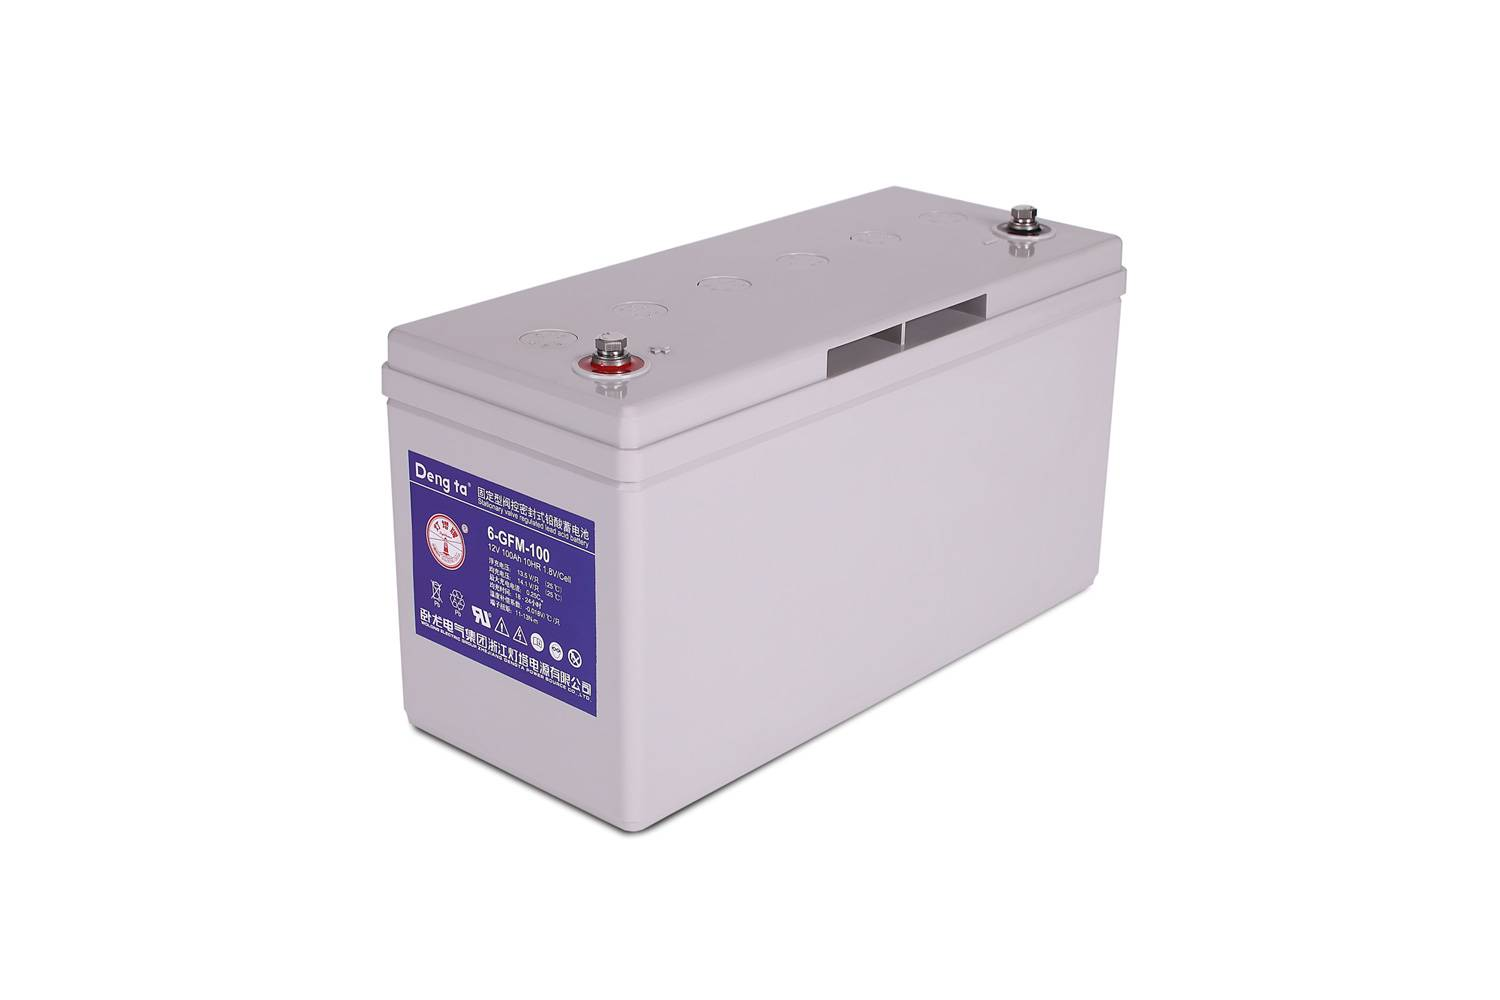 12V 100AH Rechargeable lead acid battery for UPS, Telecom, Power Storage